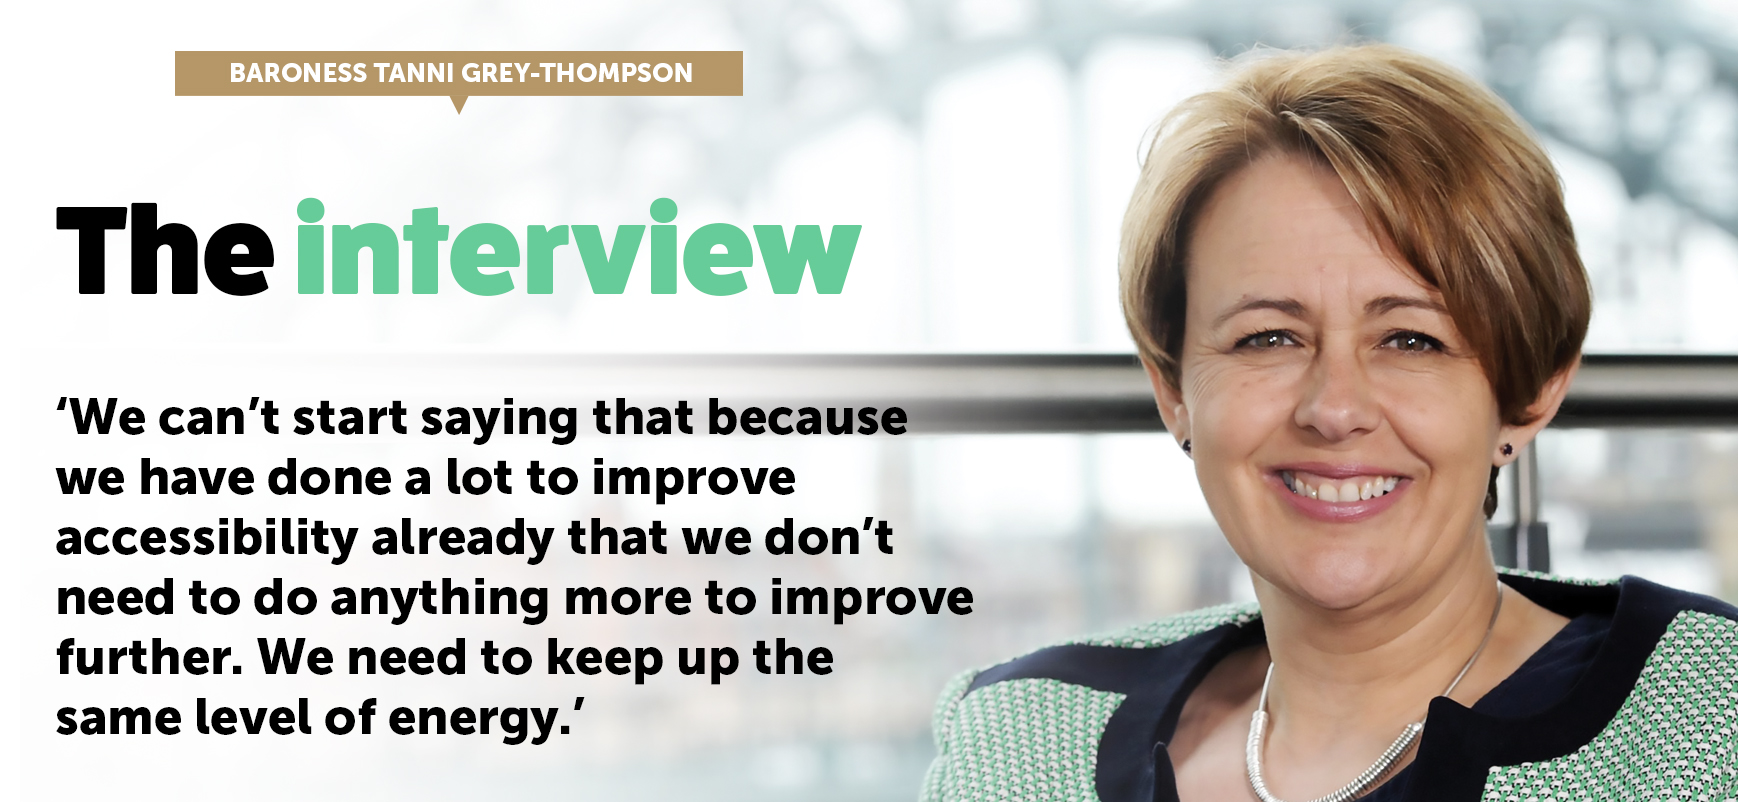 imgThe Interview: Baroness Tanni Grey-Thompson